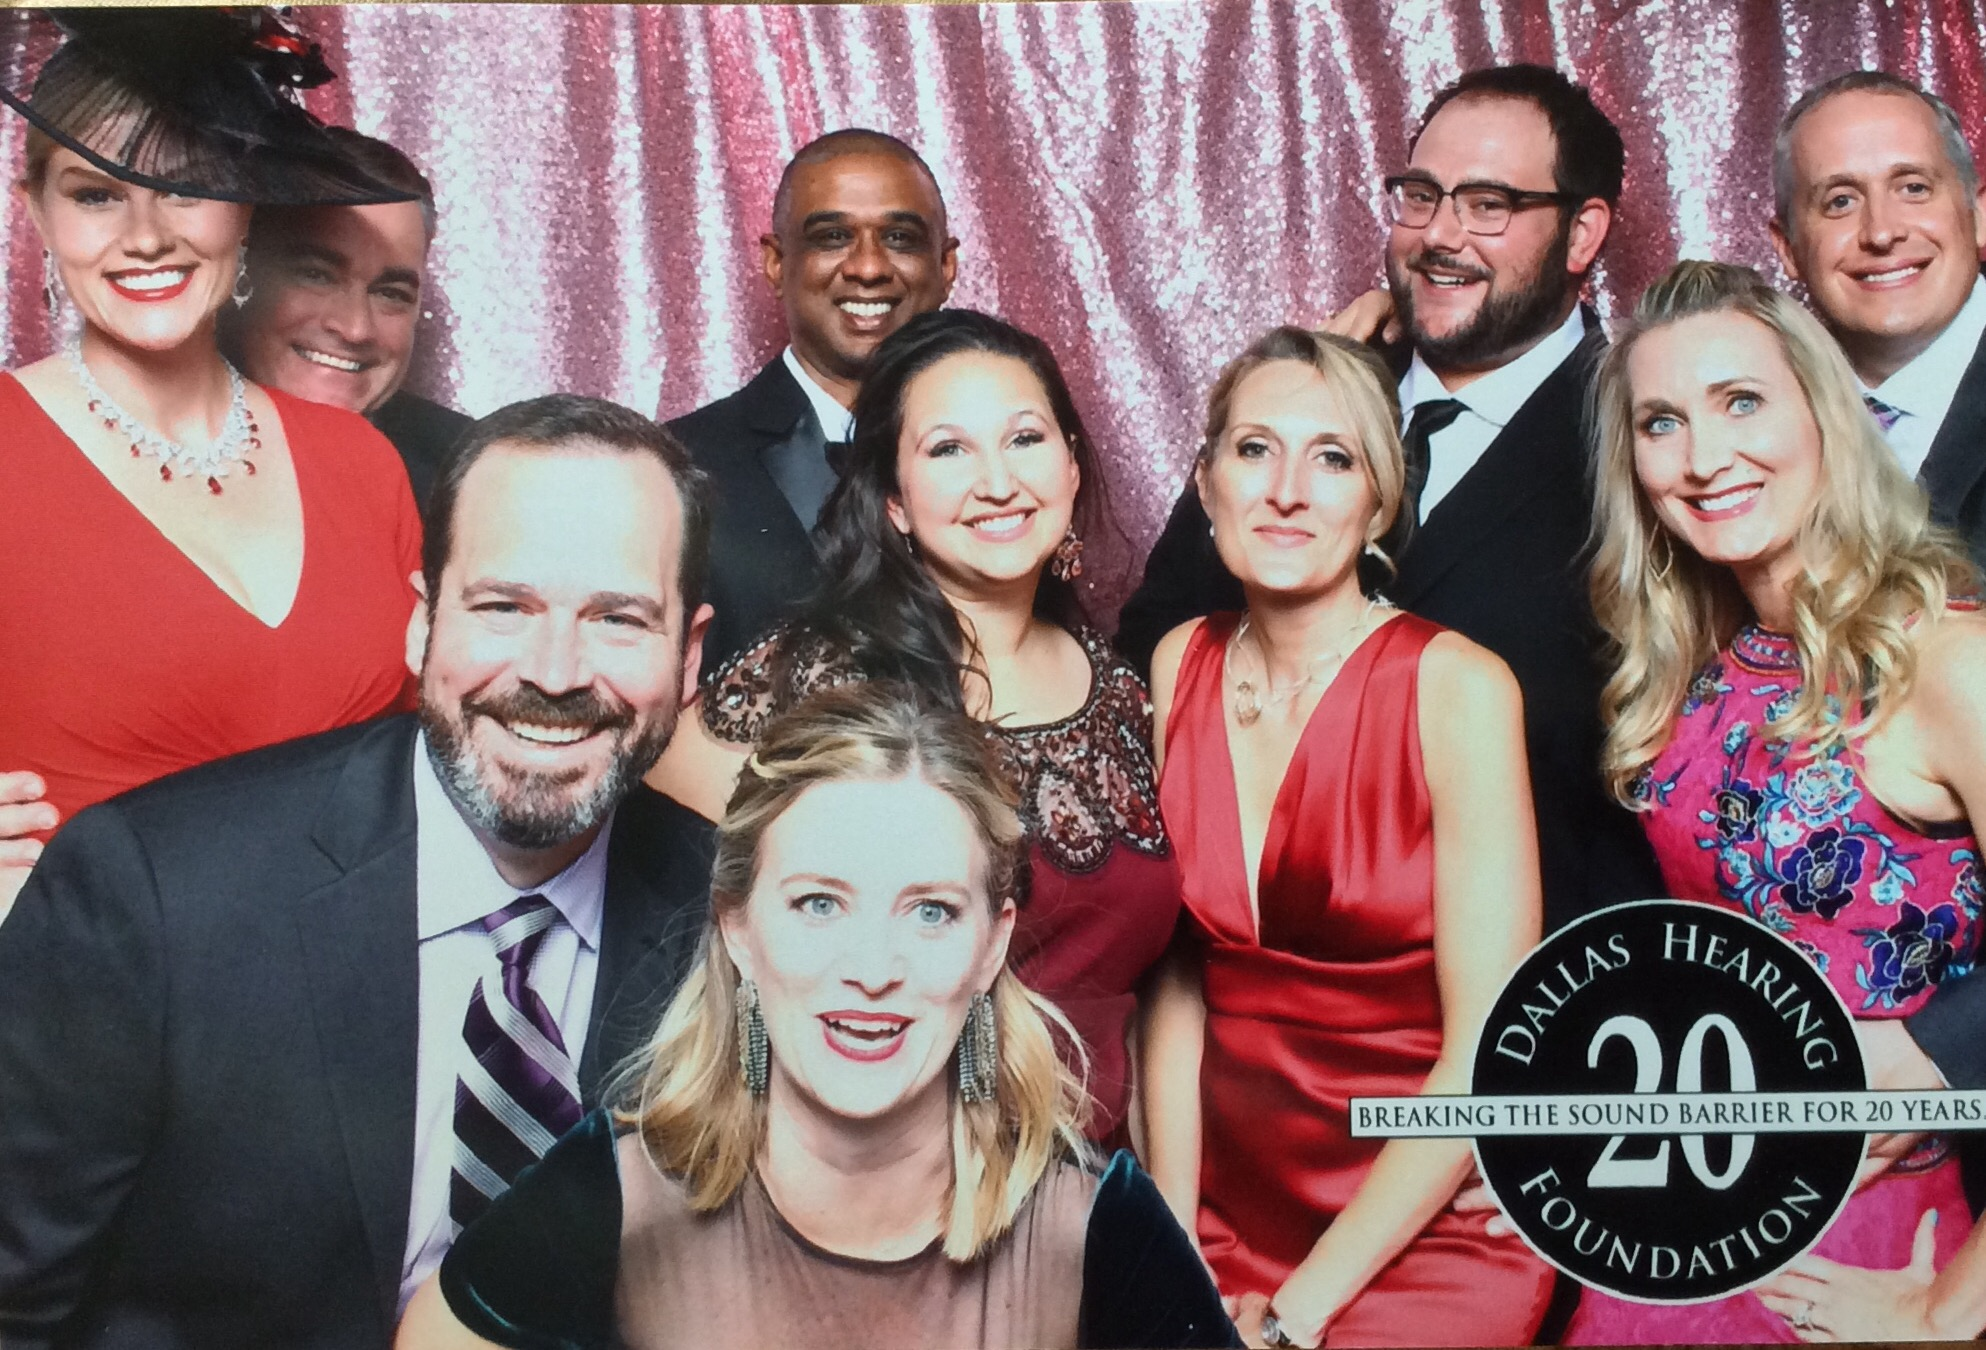 We had a great time, and enjoyed supporting a cause that gives people the gift of hearing. The Foundation had several ...